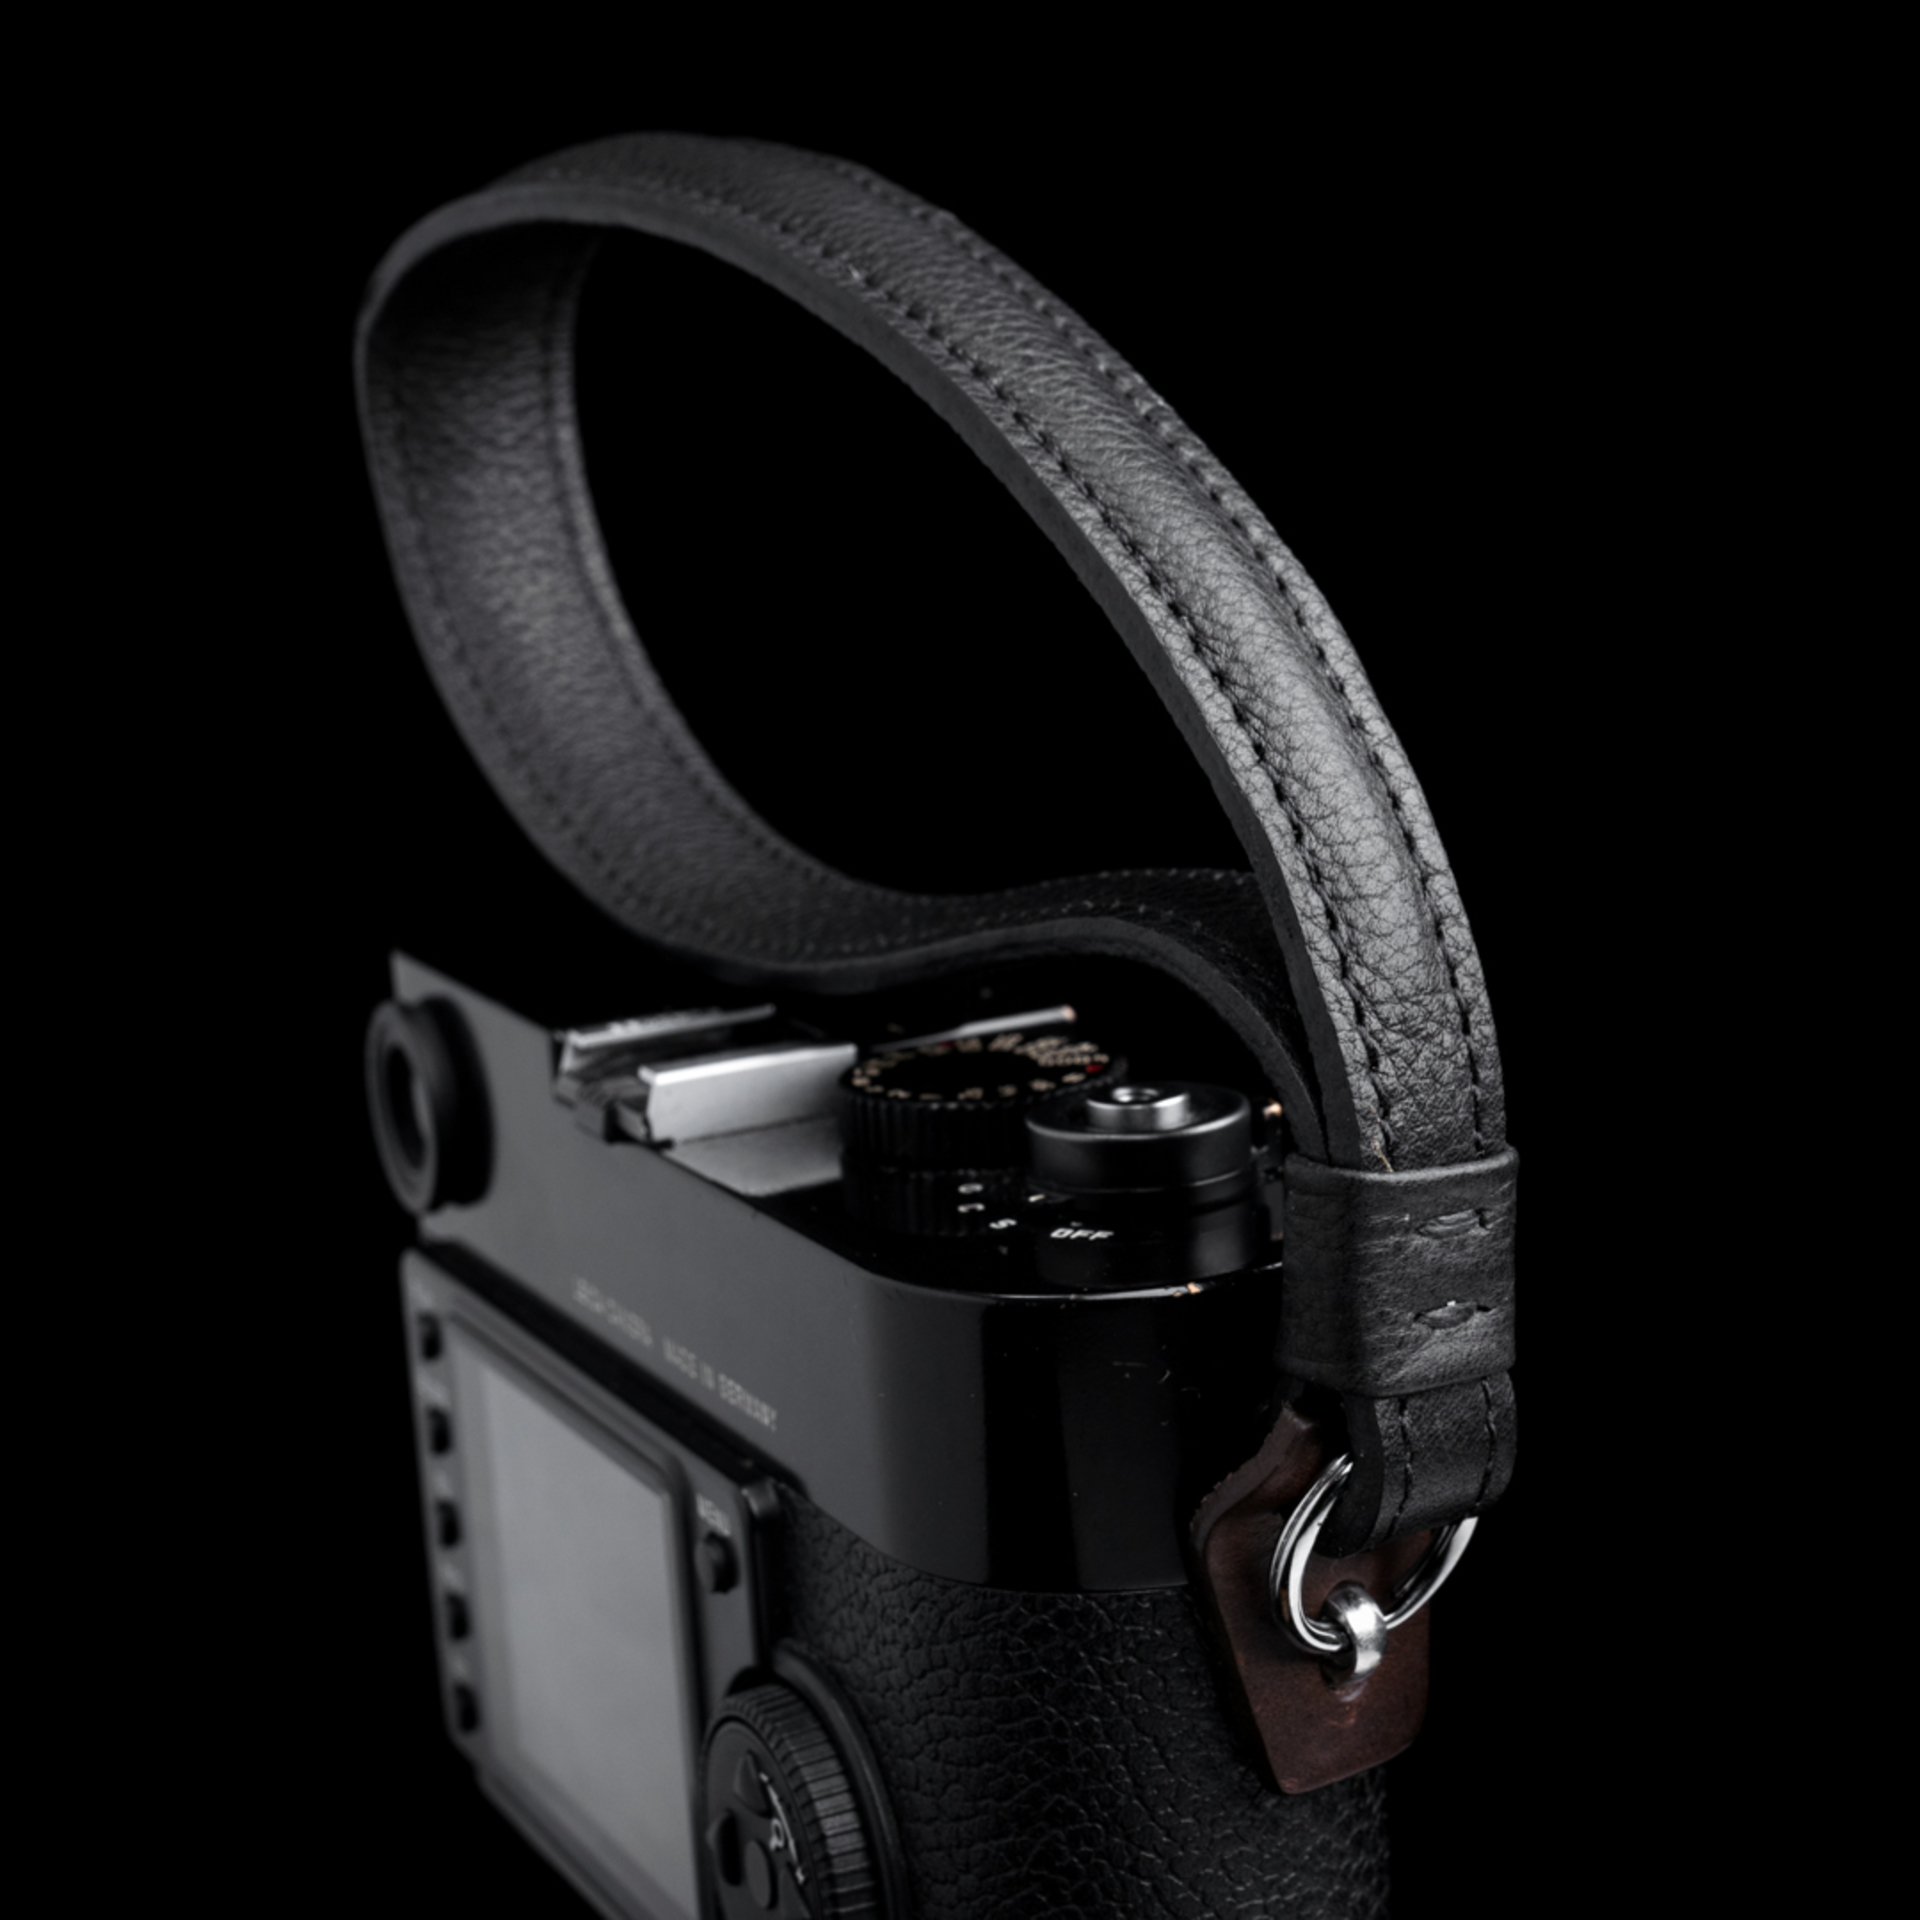 PEBBLE GRAIN LEATHER CAMERA WRIST STRAP